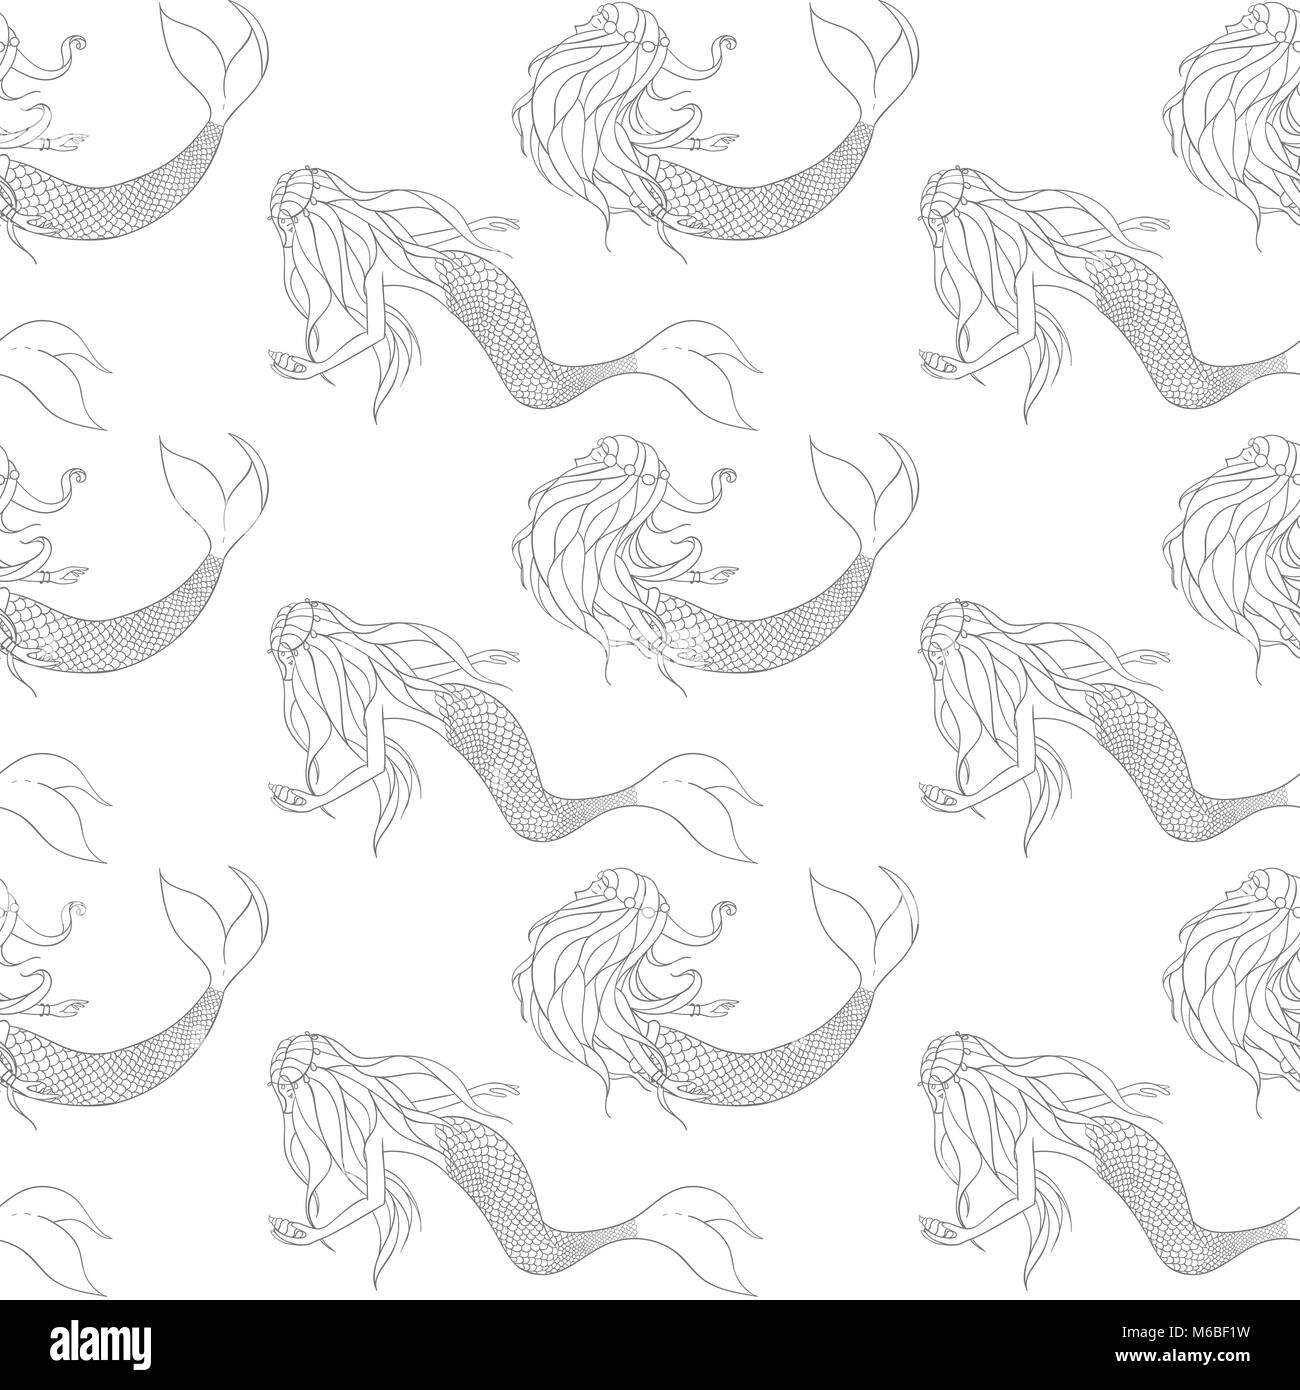 Beautiful mermaids contours vector seamless pattern. Underwater mythical creatures on the white background. - Stock Image